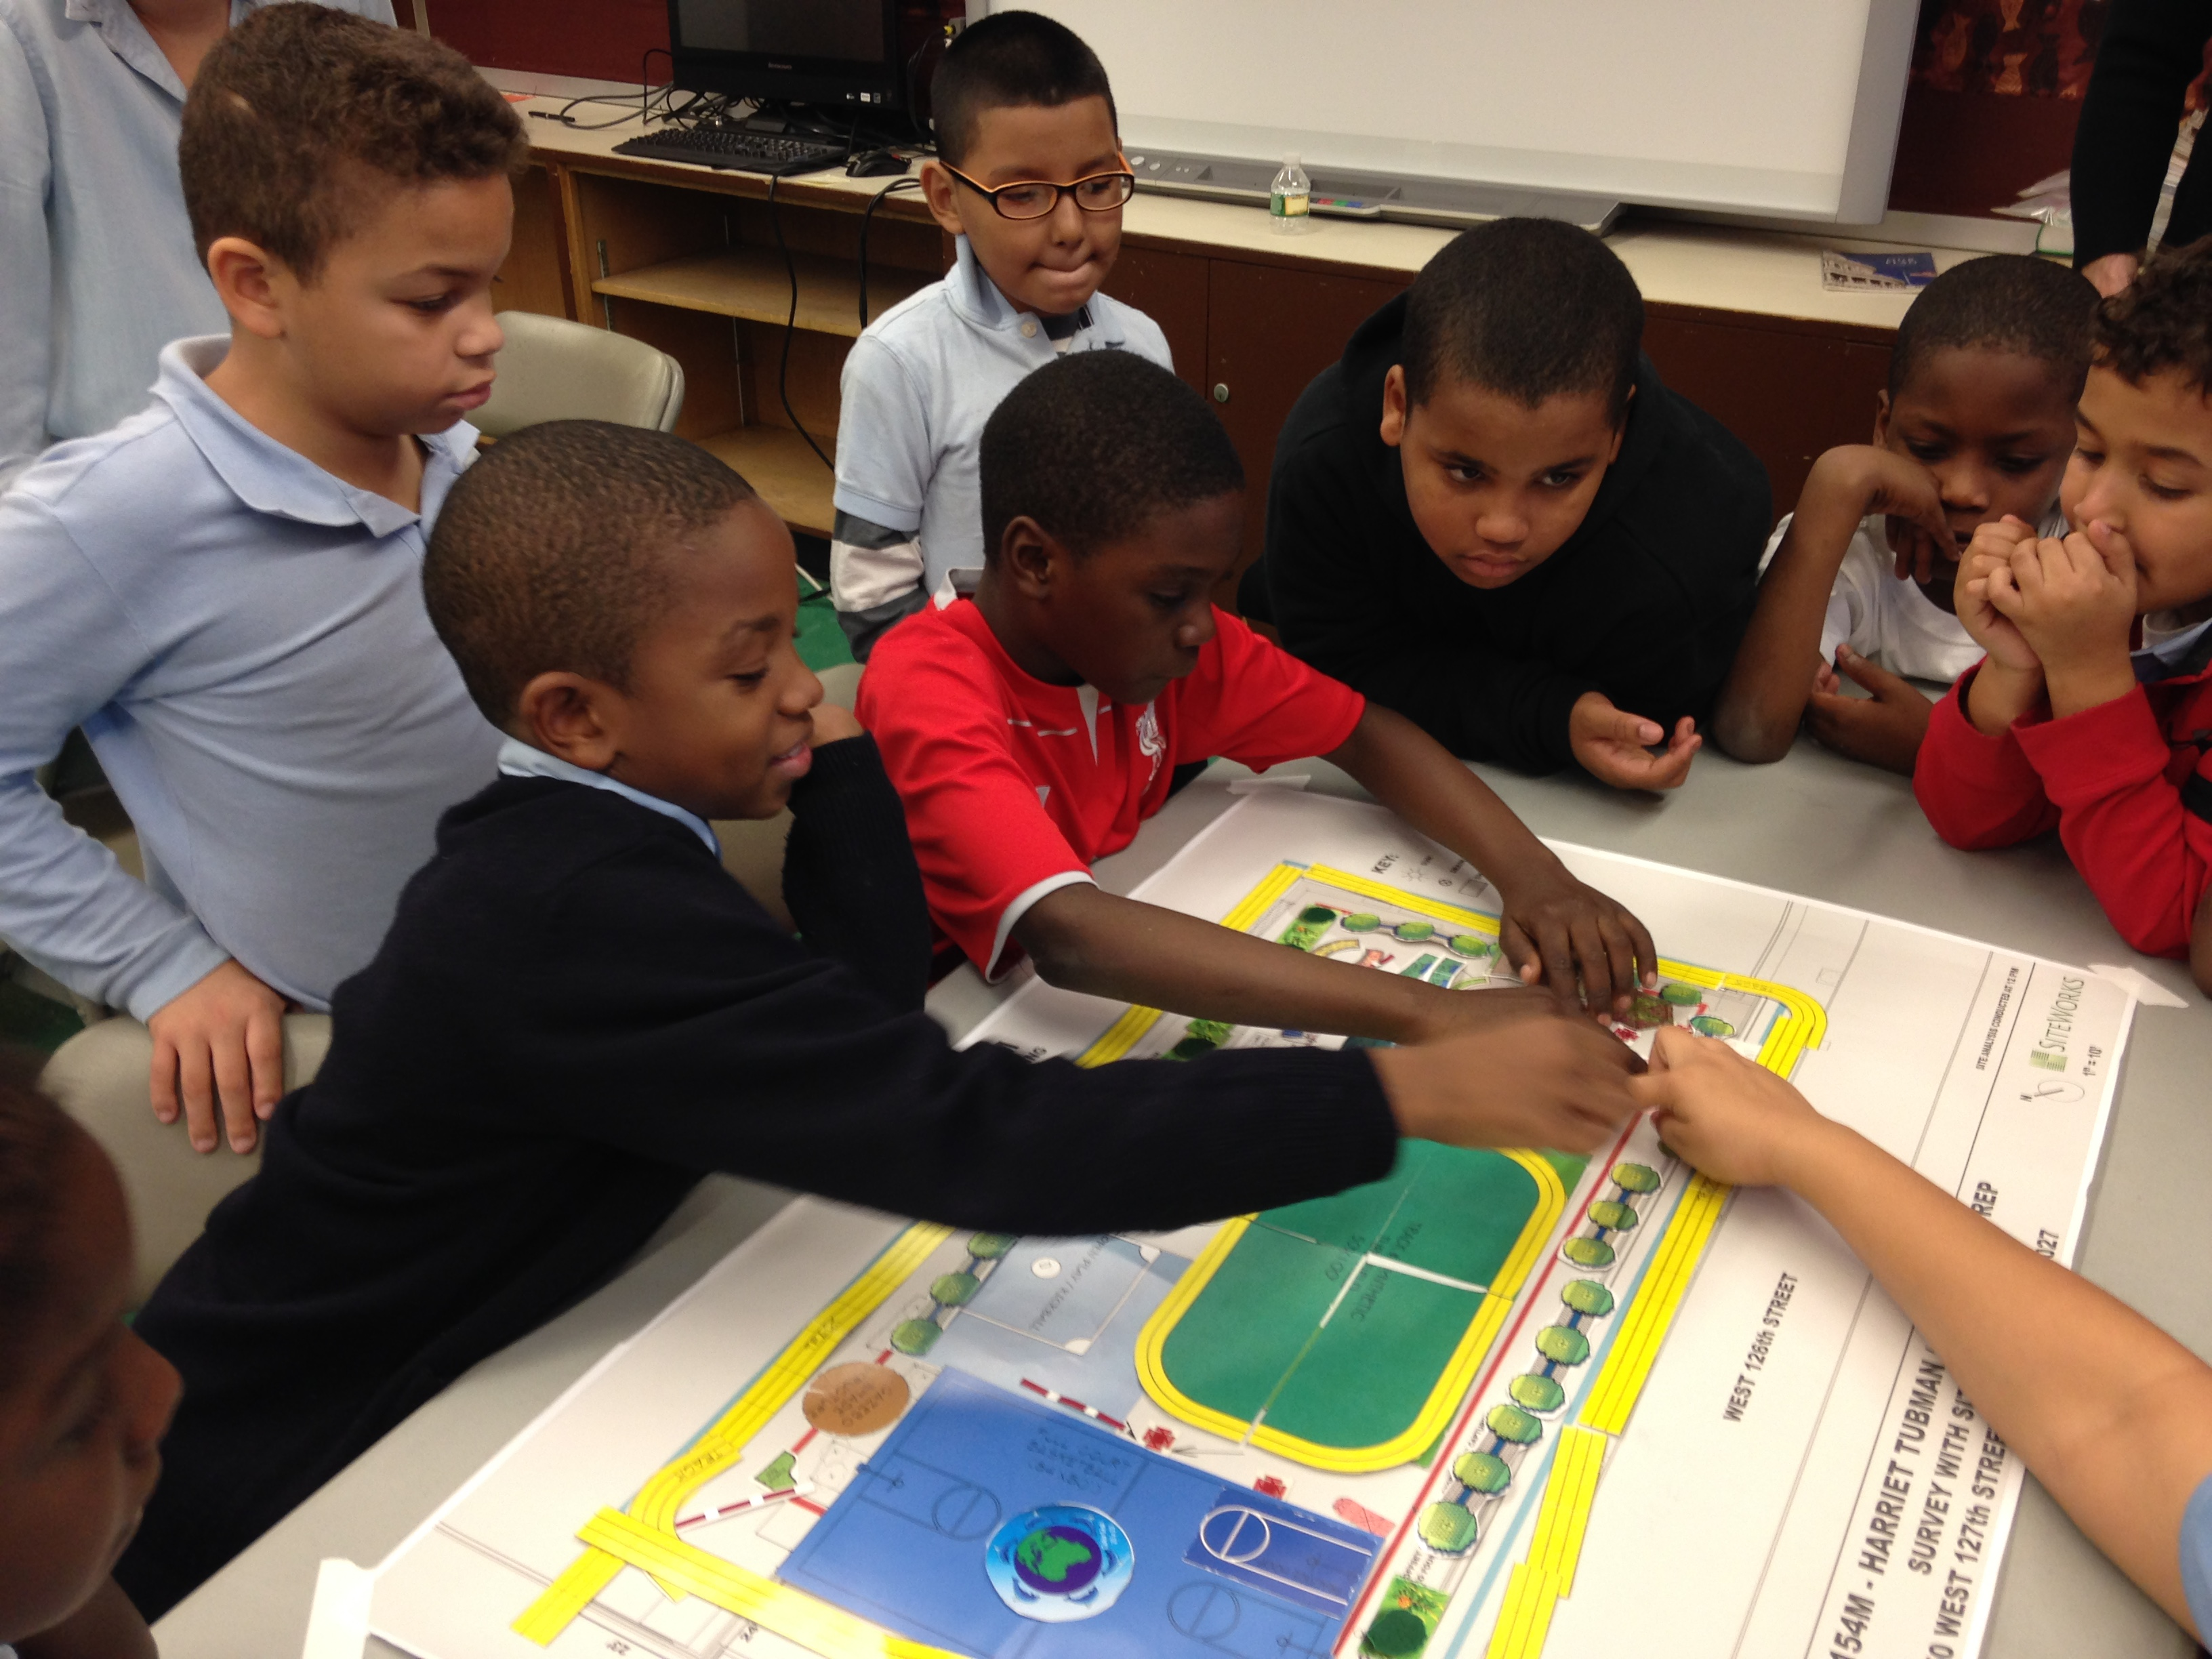 Students design a playground